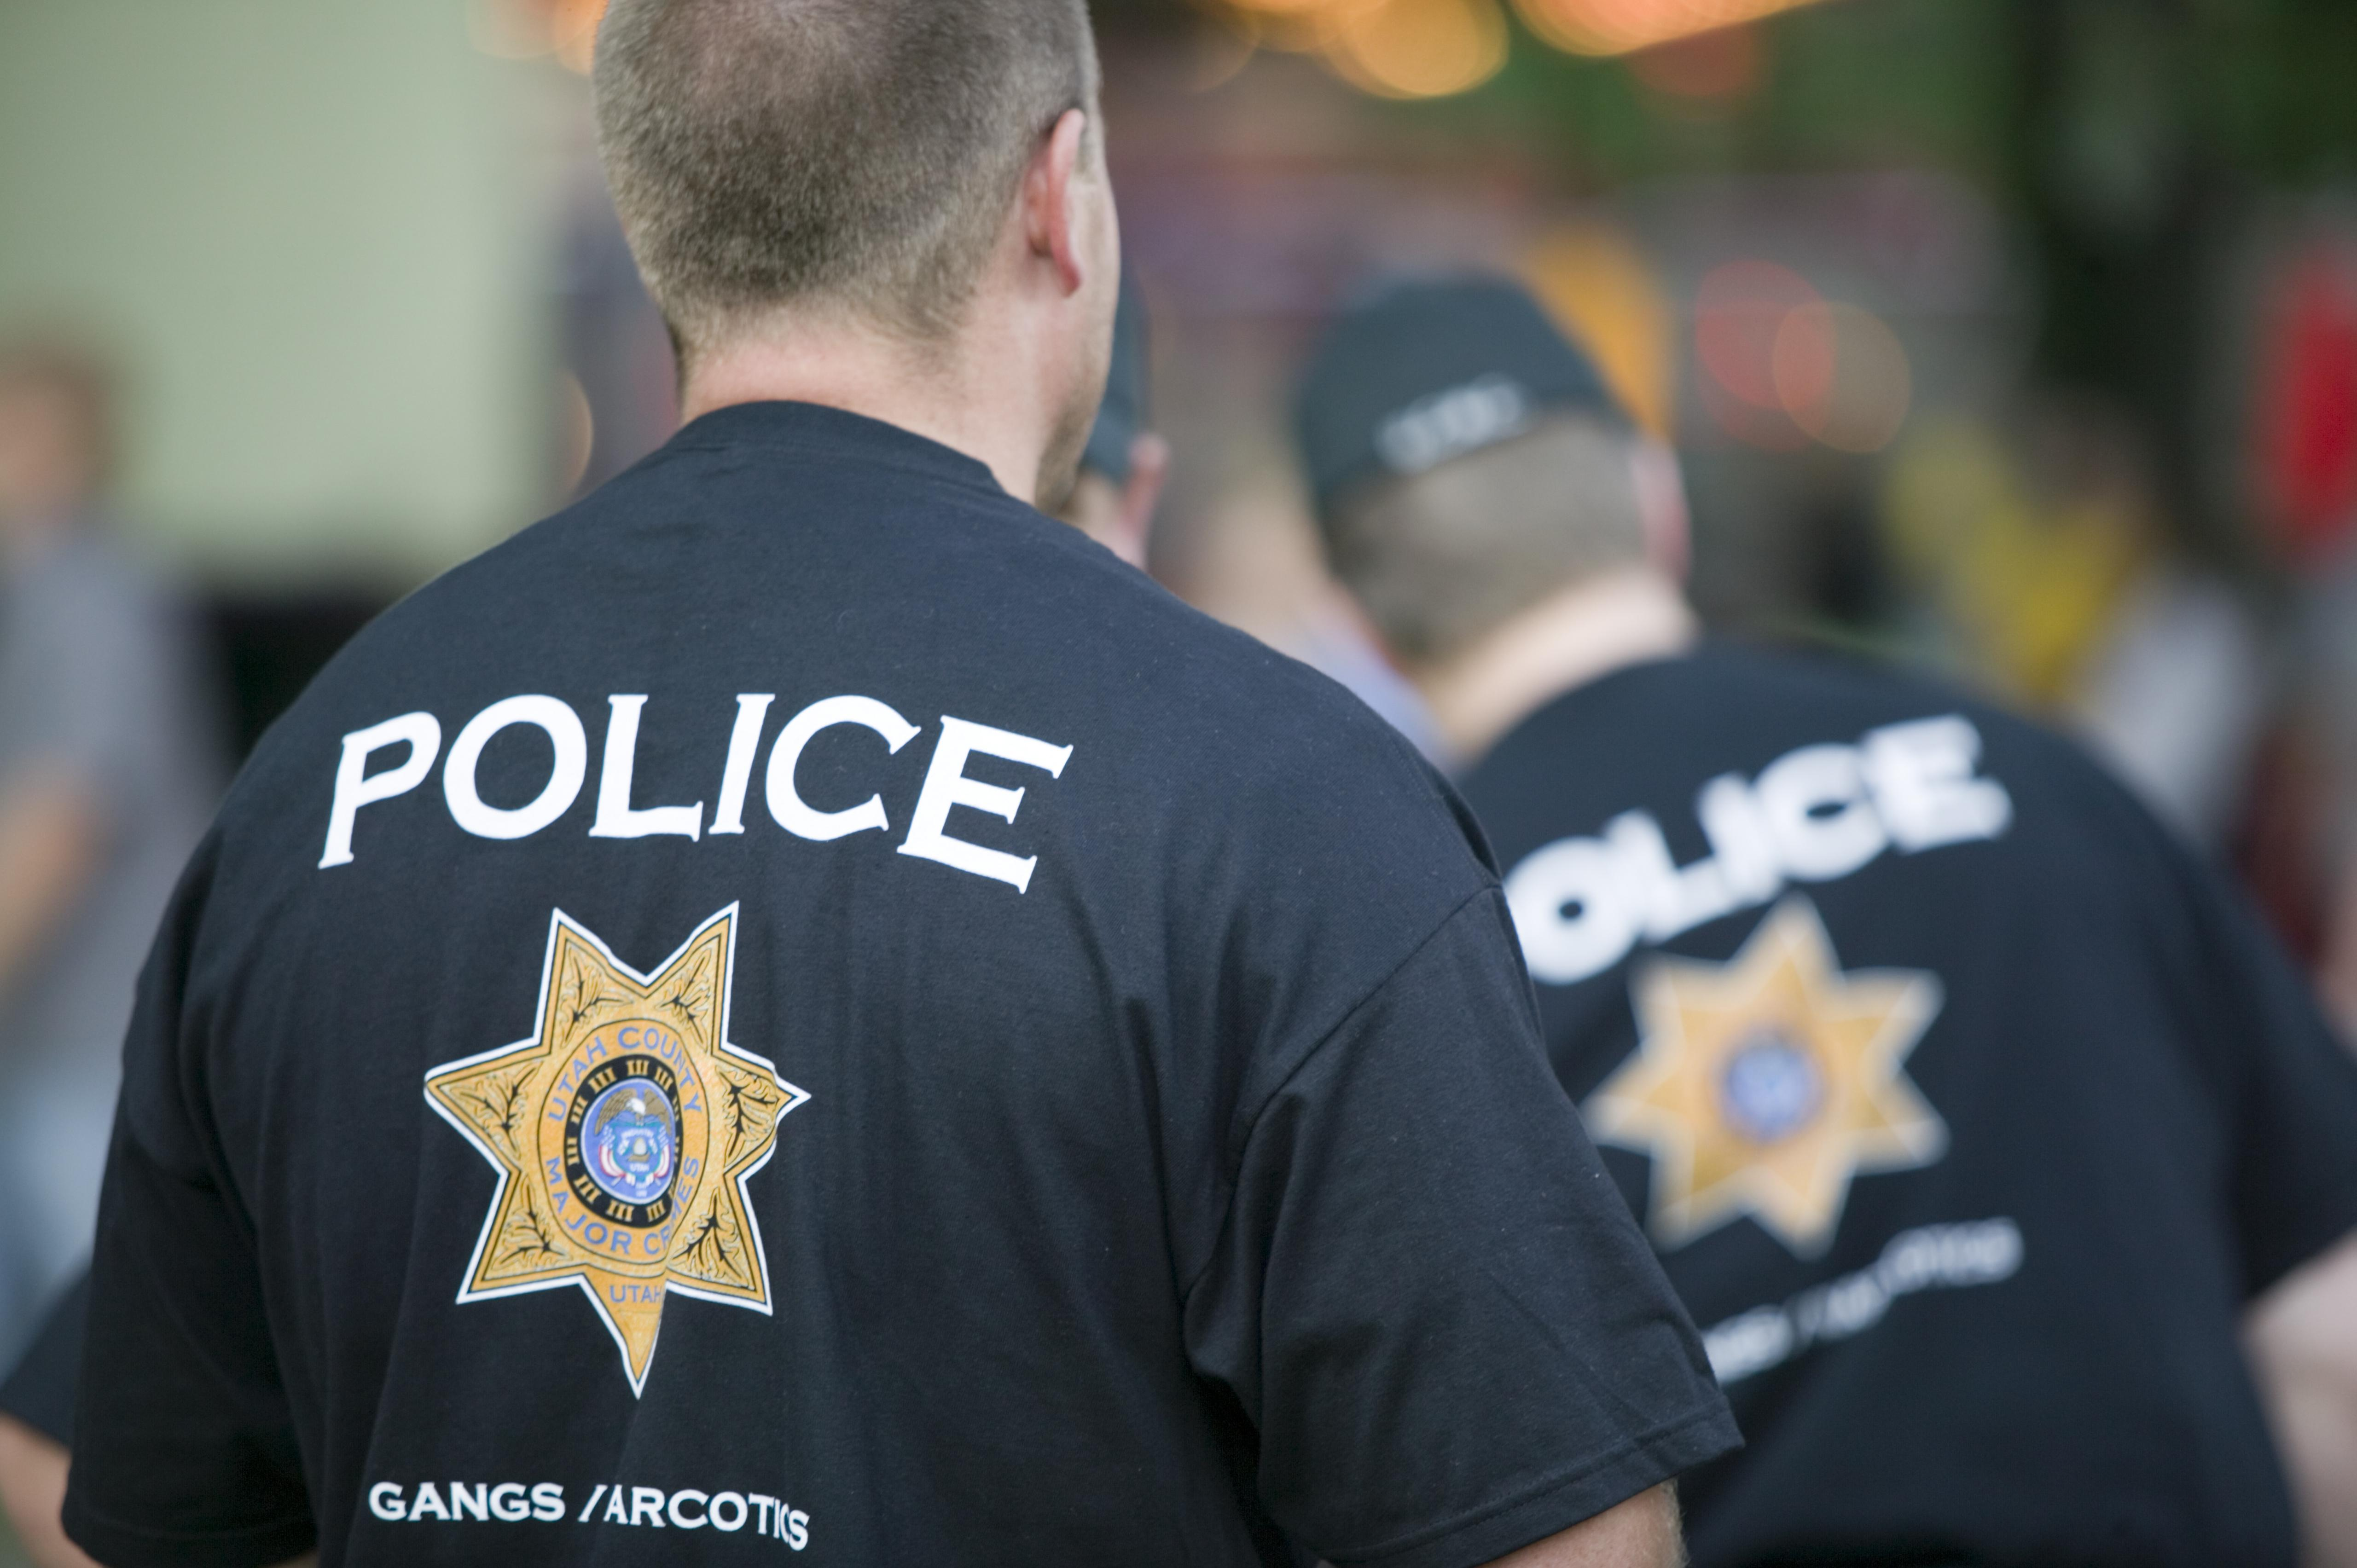 Two gang / narcotics police officers